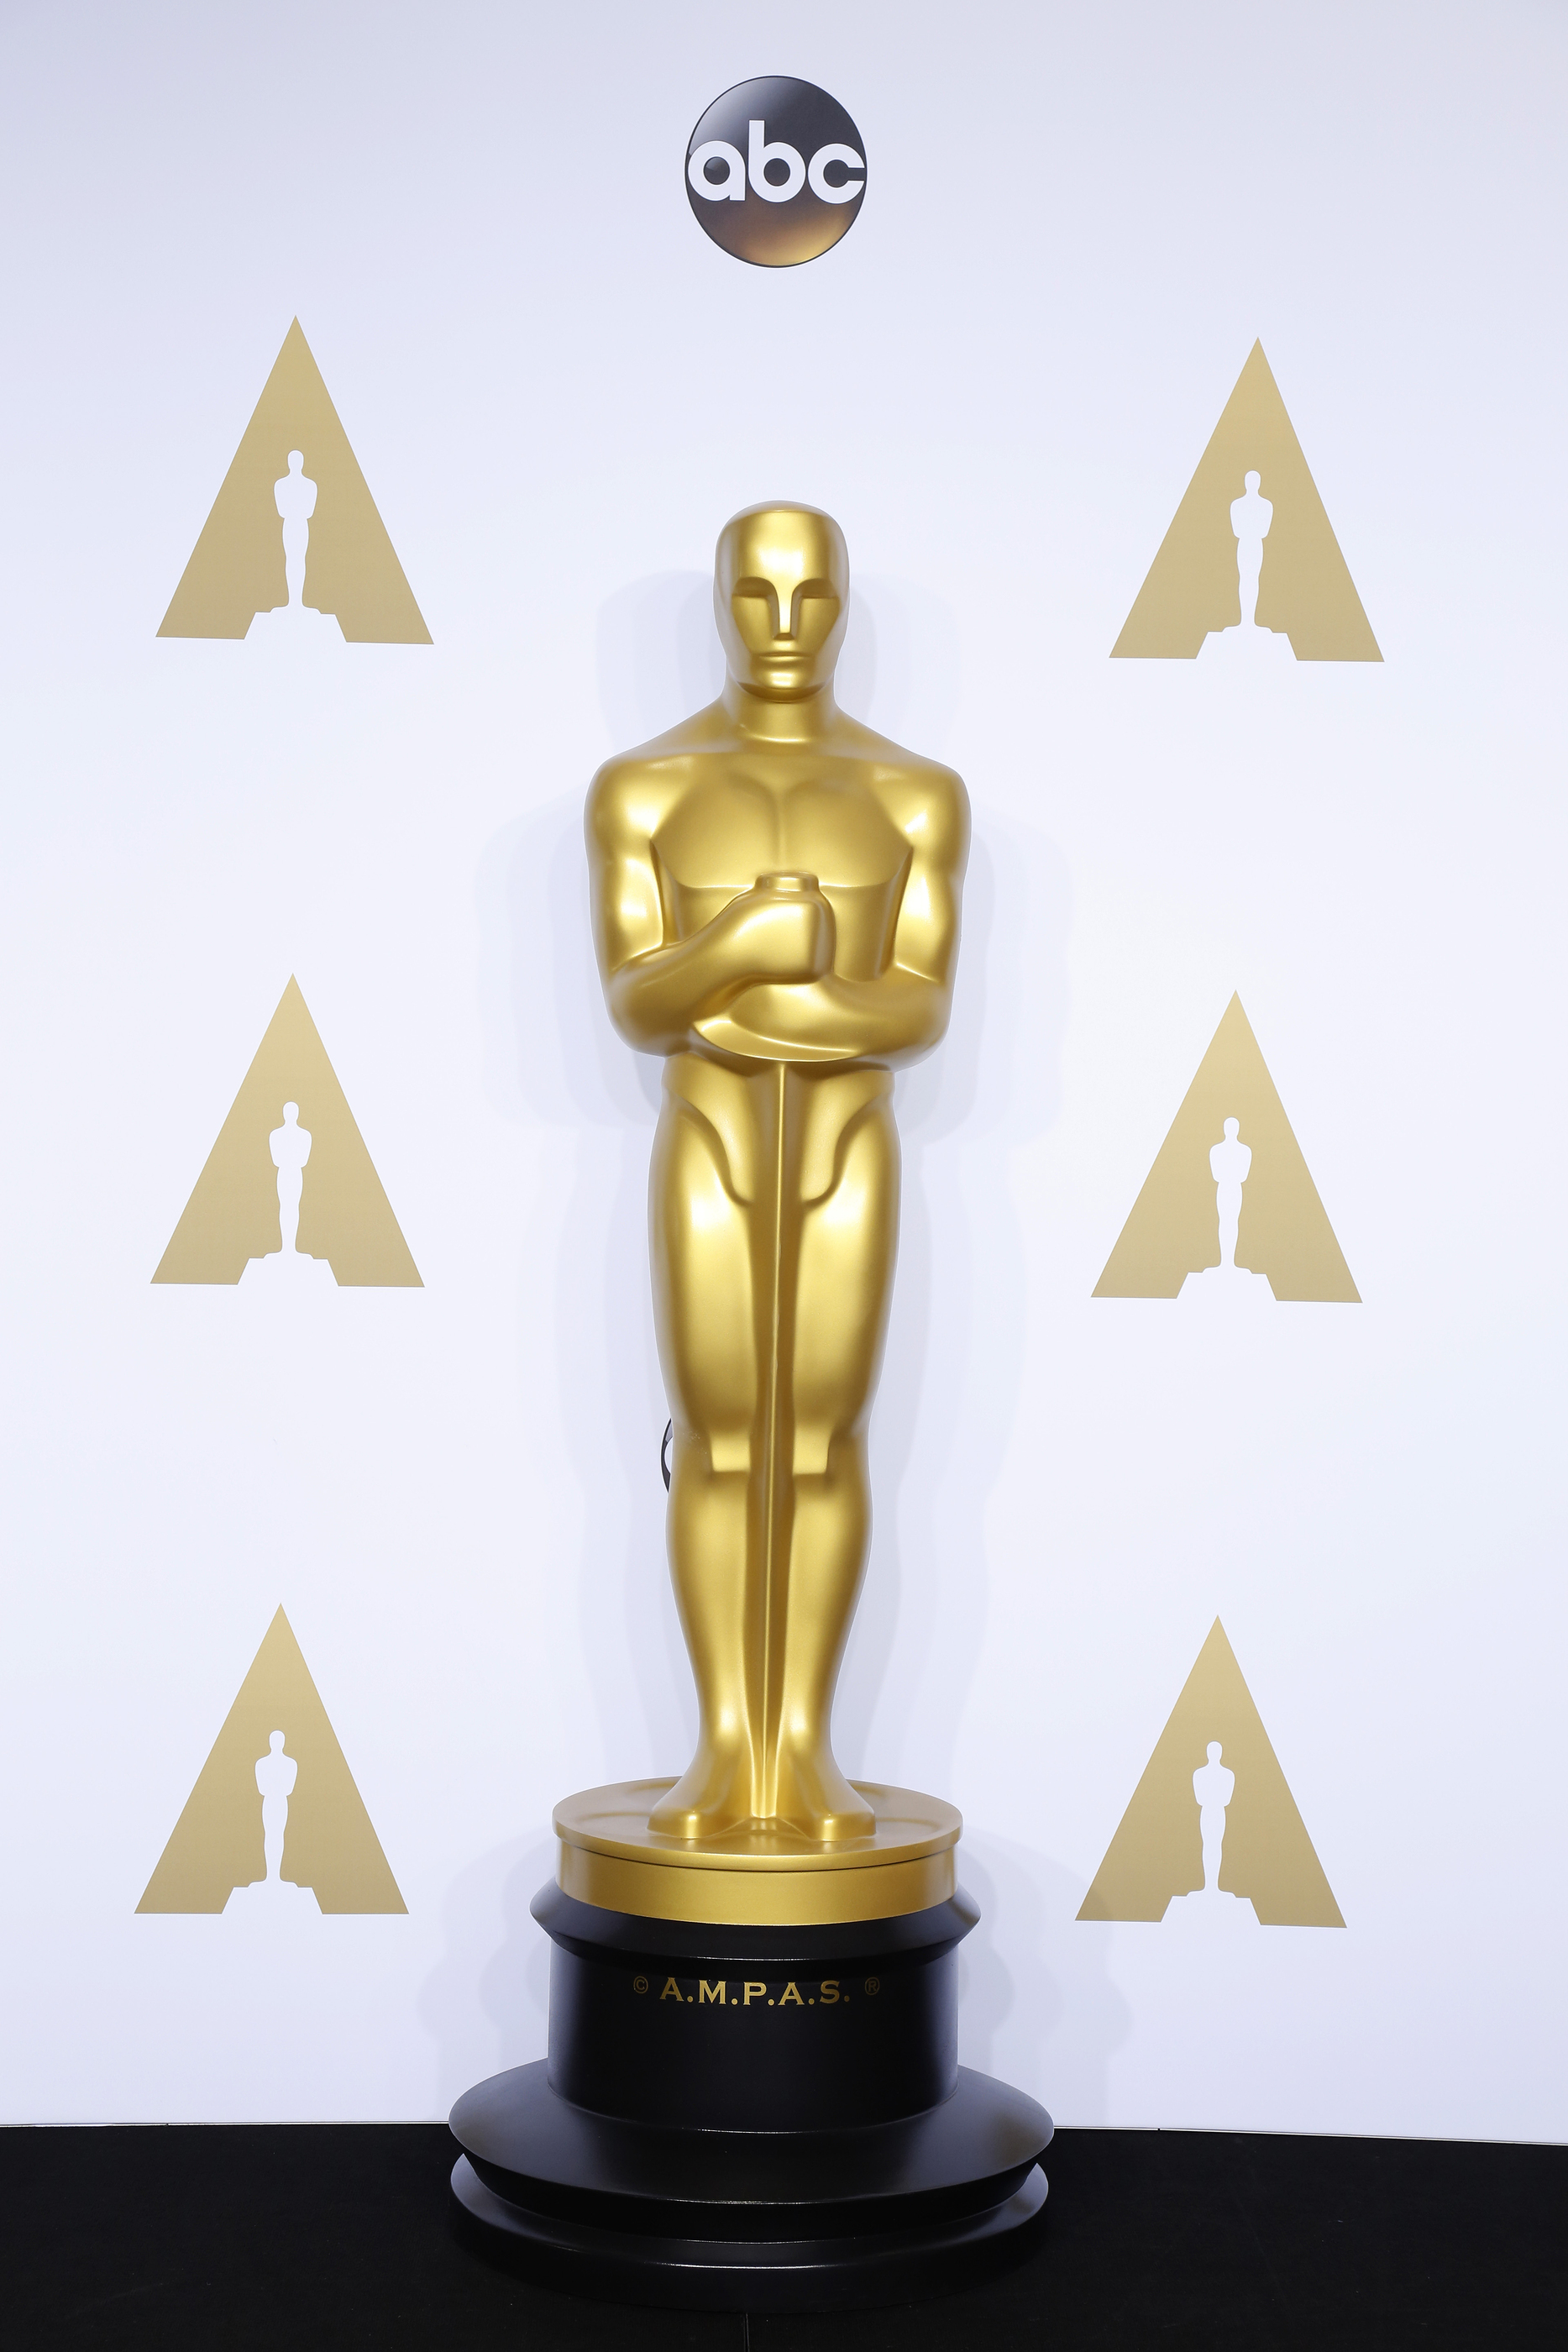 Much Oscar Worth on academy award trophy